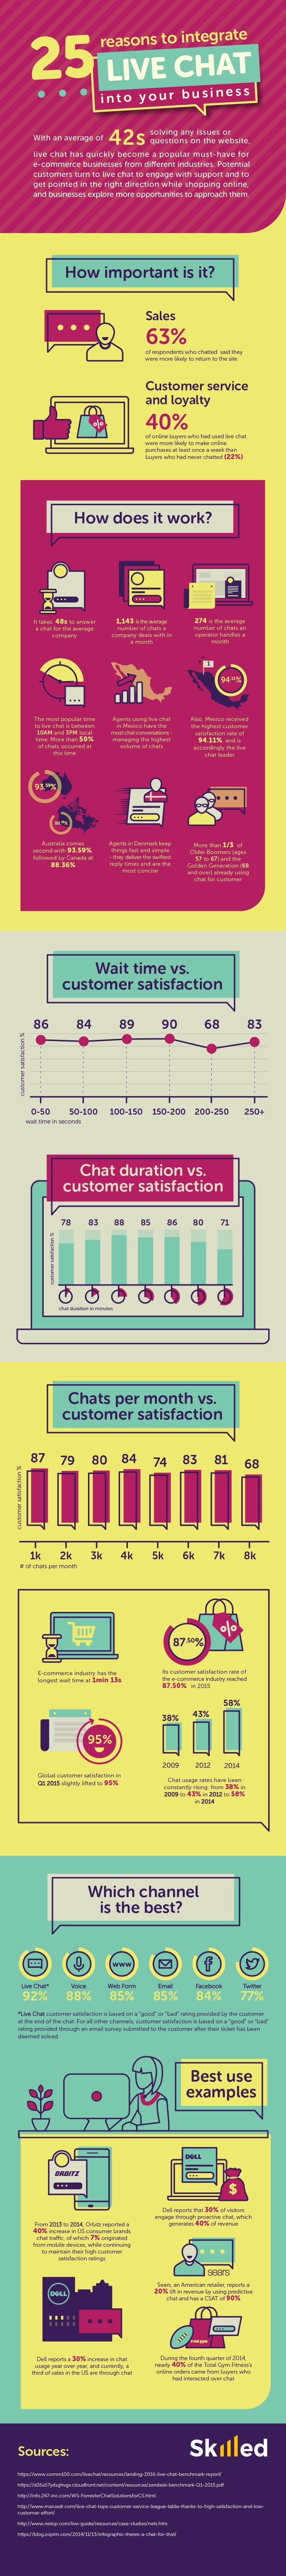 25 Reasons to Integrate Live Chat into Your Business Website [Infographic] | Social Media Today